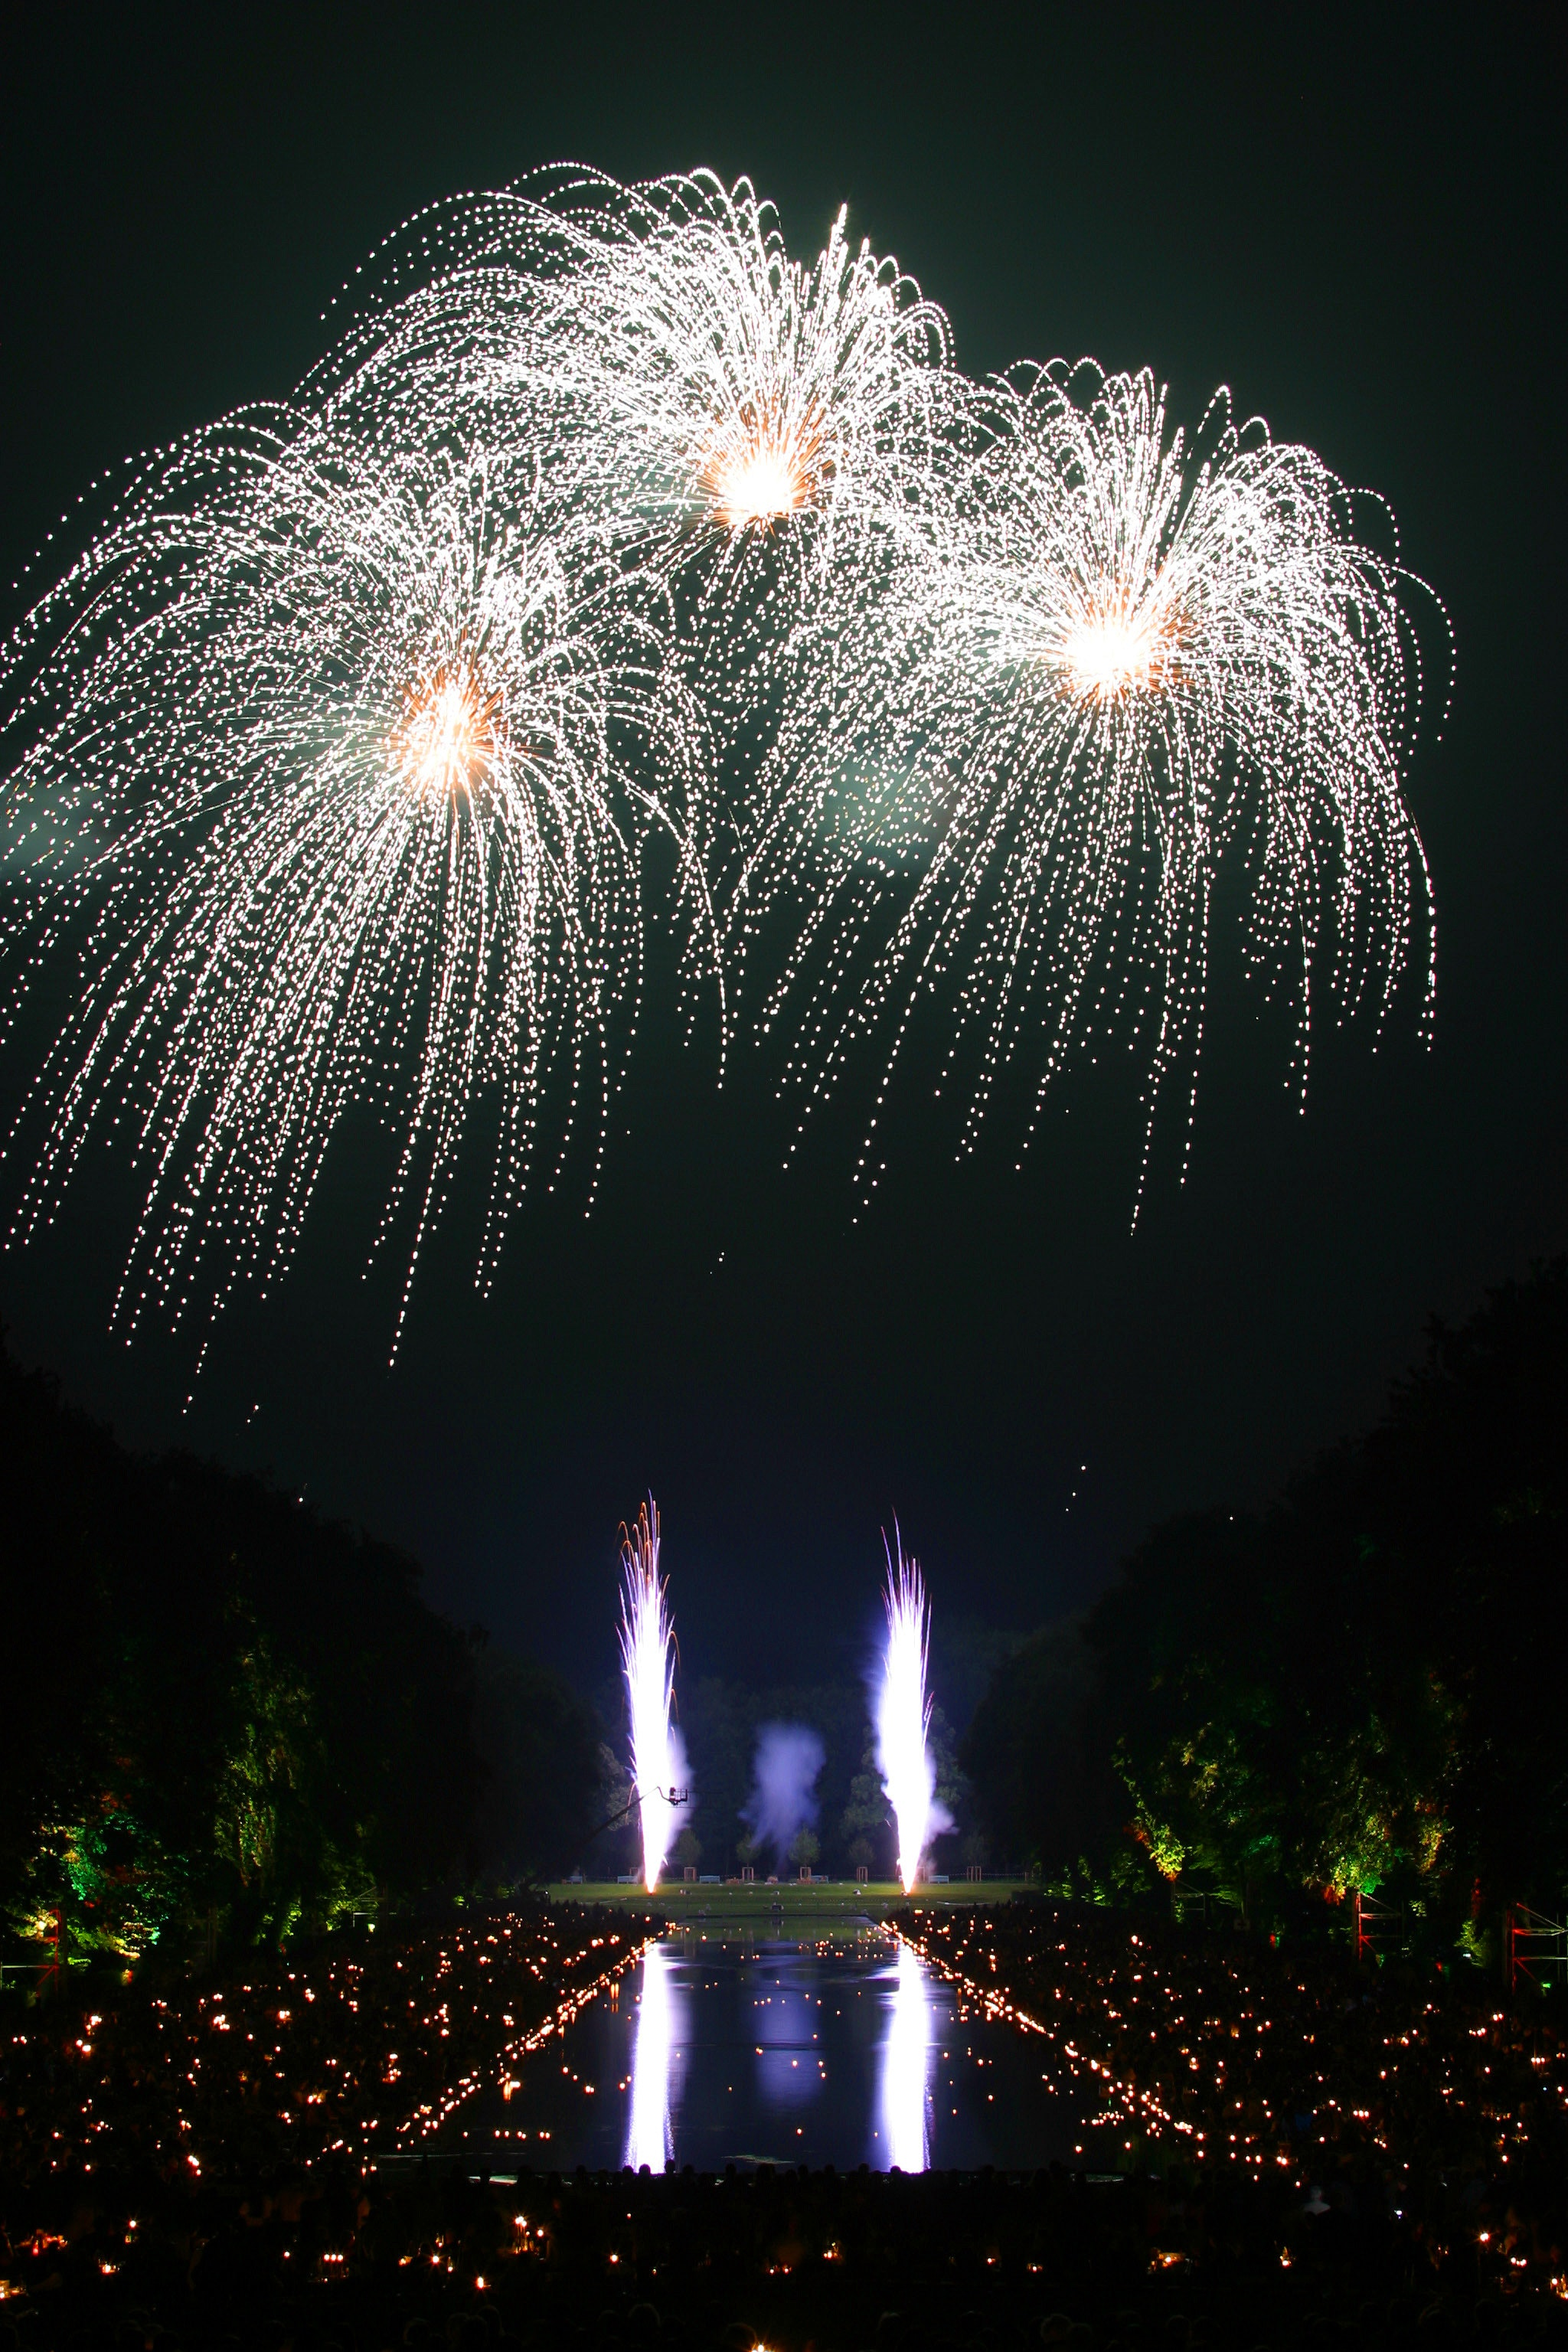 Fireworks Time Laps Photography, 2018, Magic, Trees, Swimming pool, HQ Photo